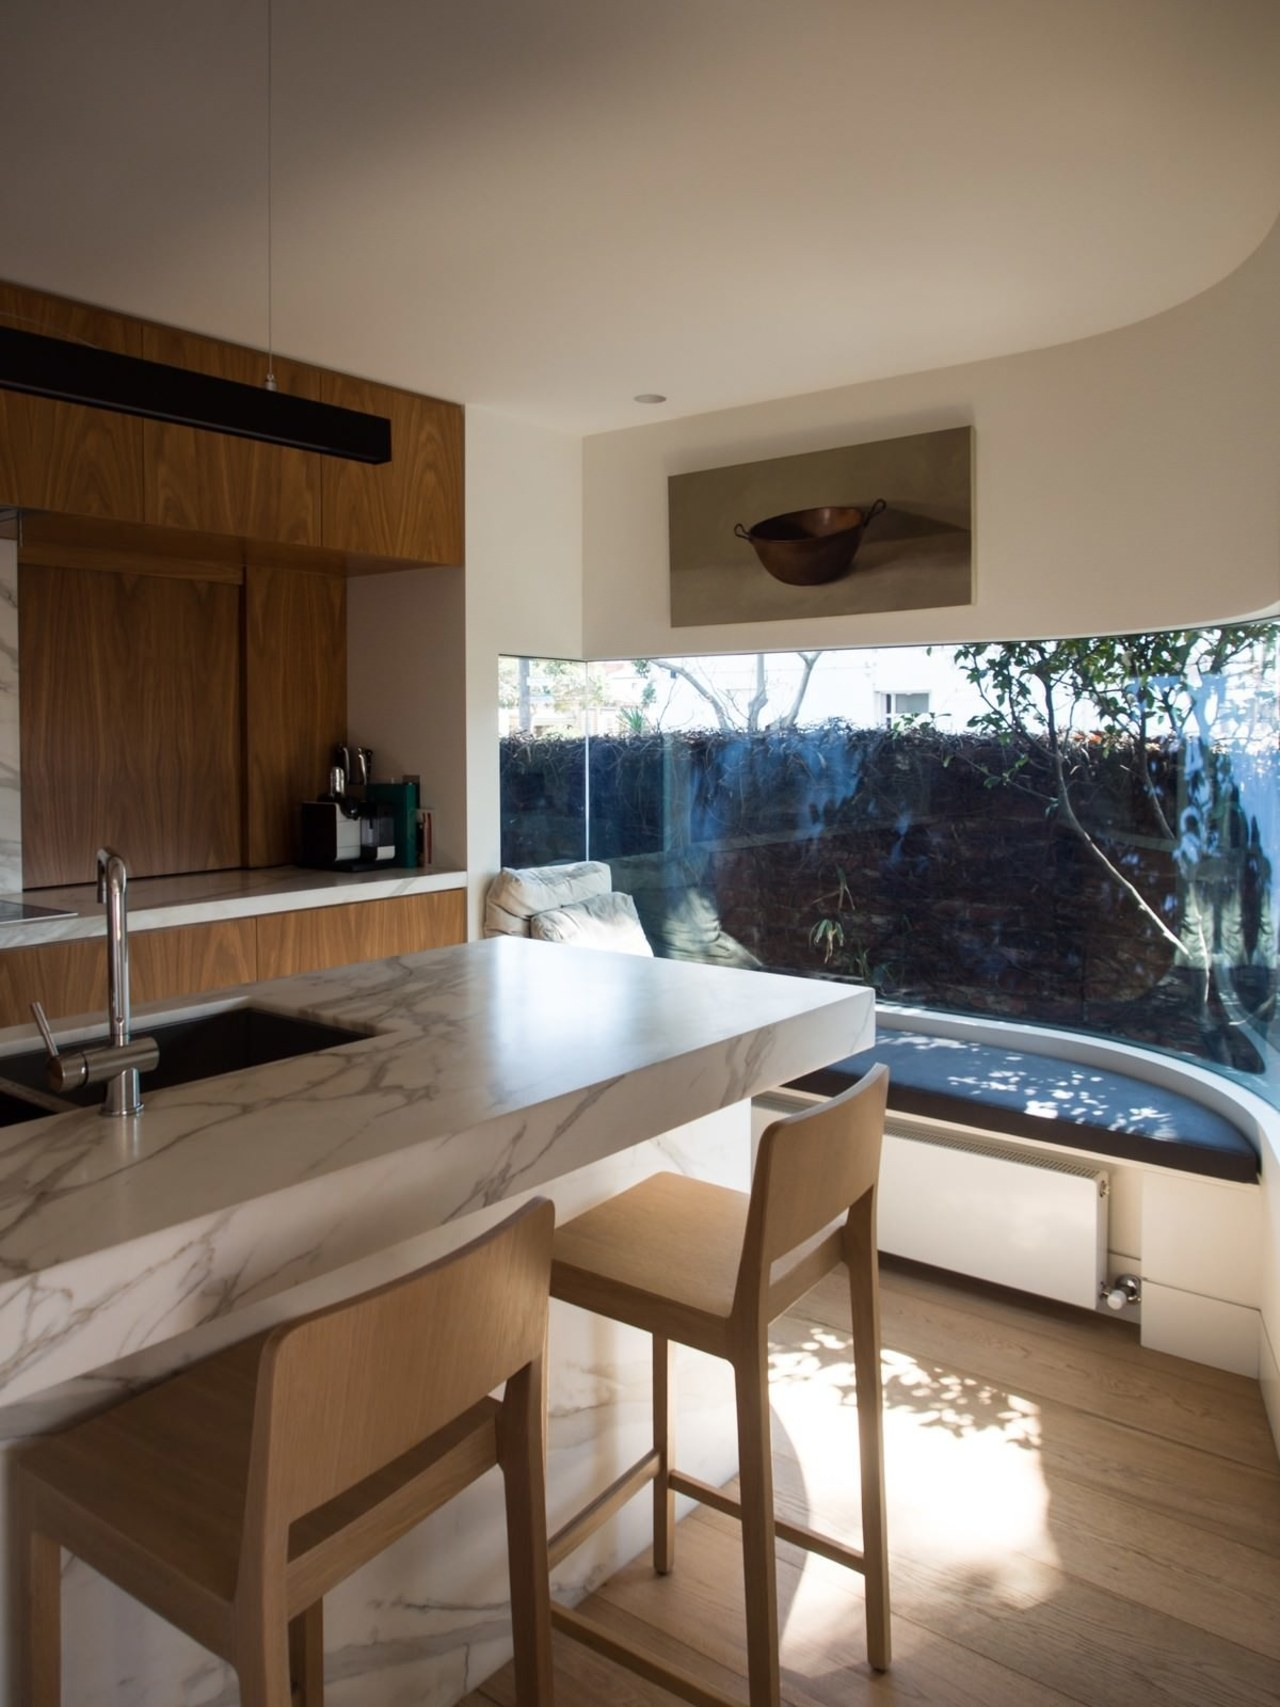 The kitchen isn't overwhelming – the architect opted architecture, countertop, house, interior design, kitchen, real estate, room, table, brown, gray